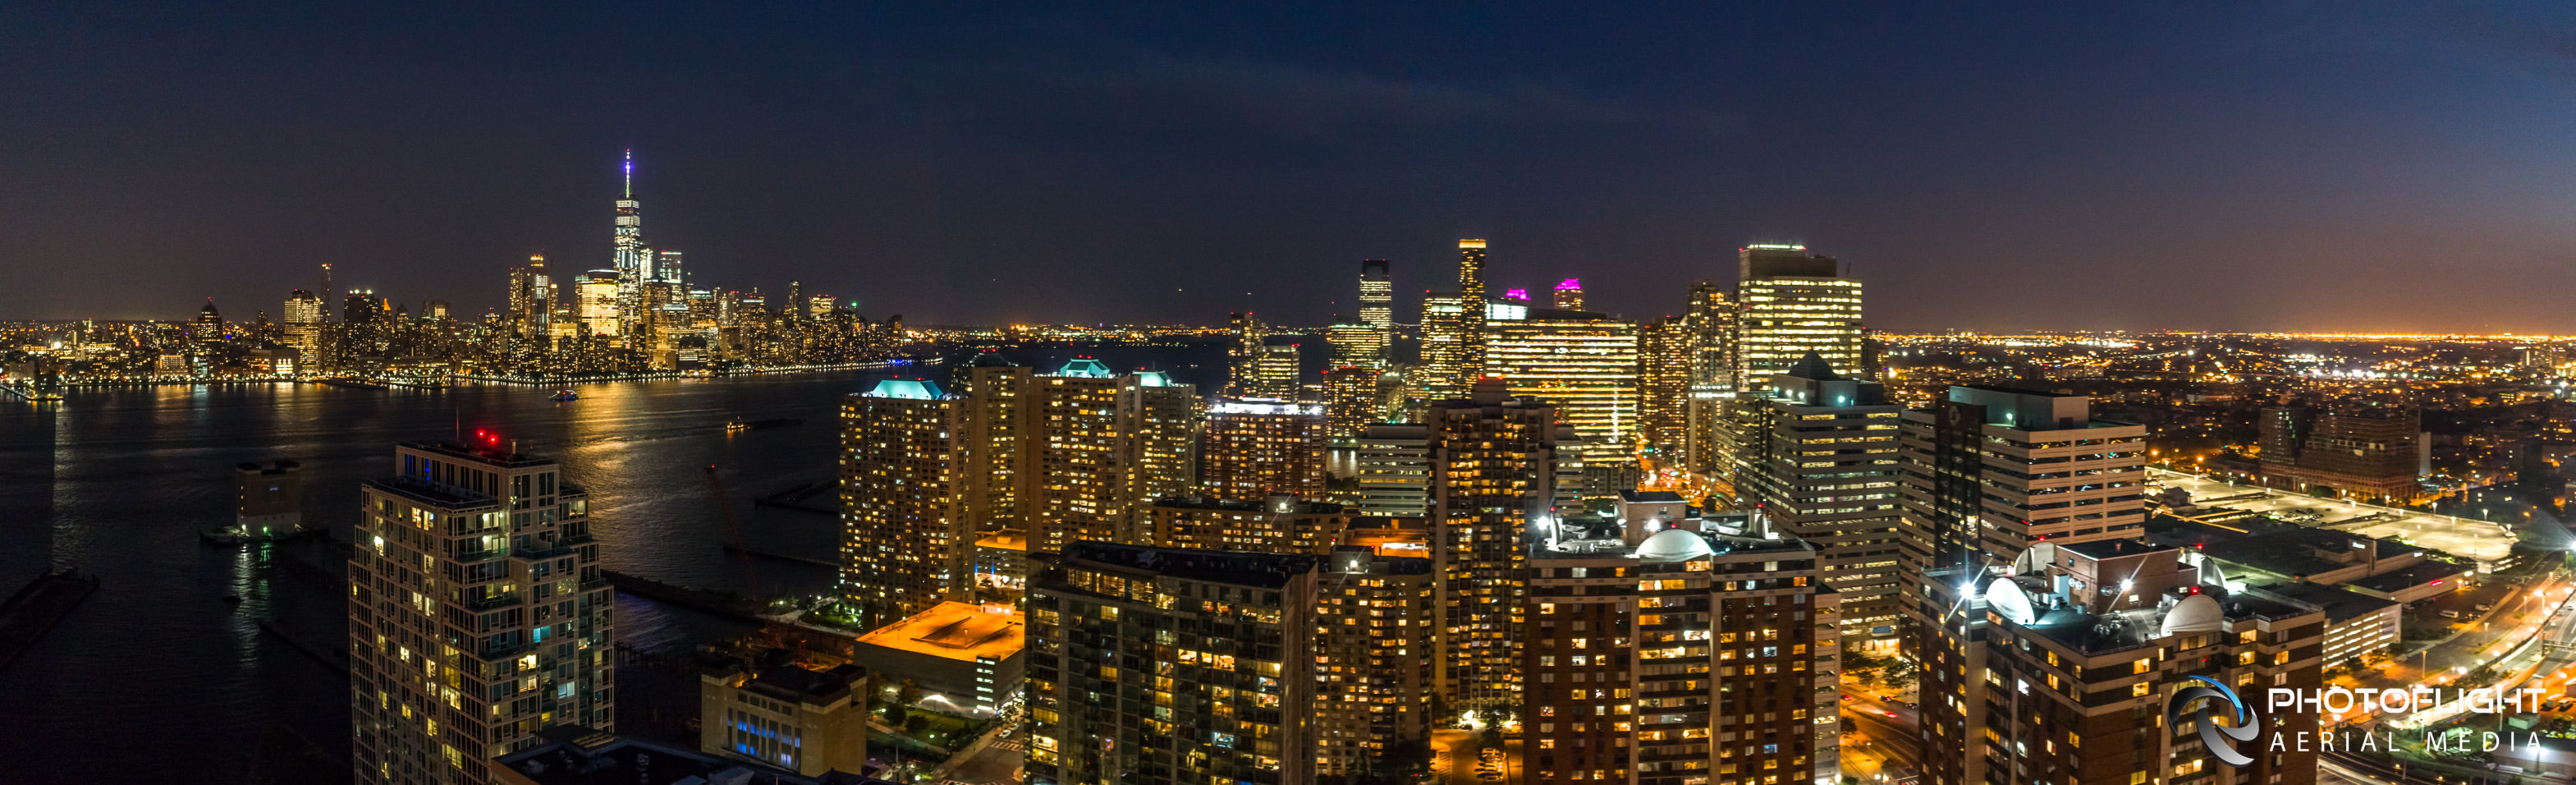 Future View NYC Drone Panorama Twilight Real Estate Photography, by Photoflight Aerial Media